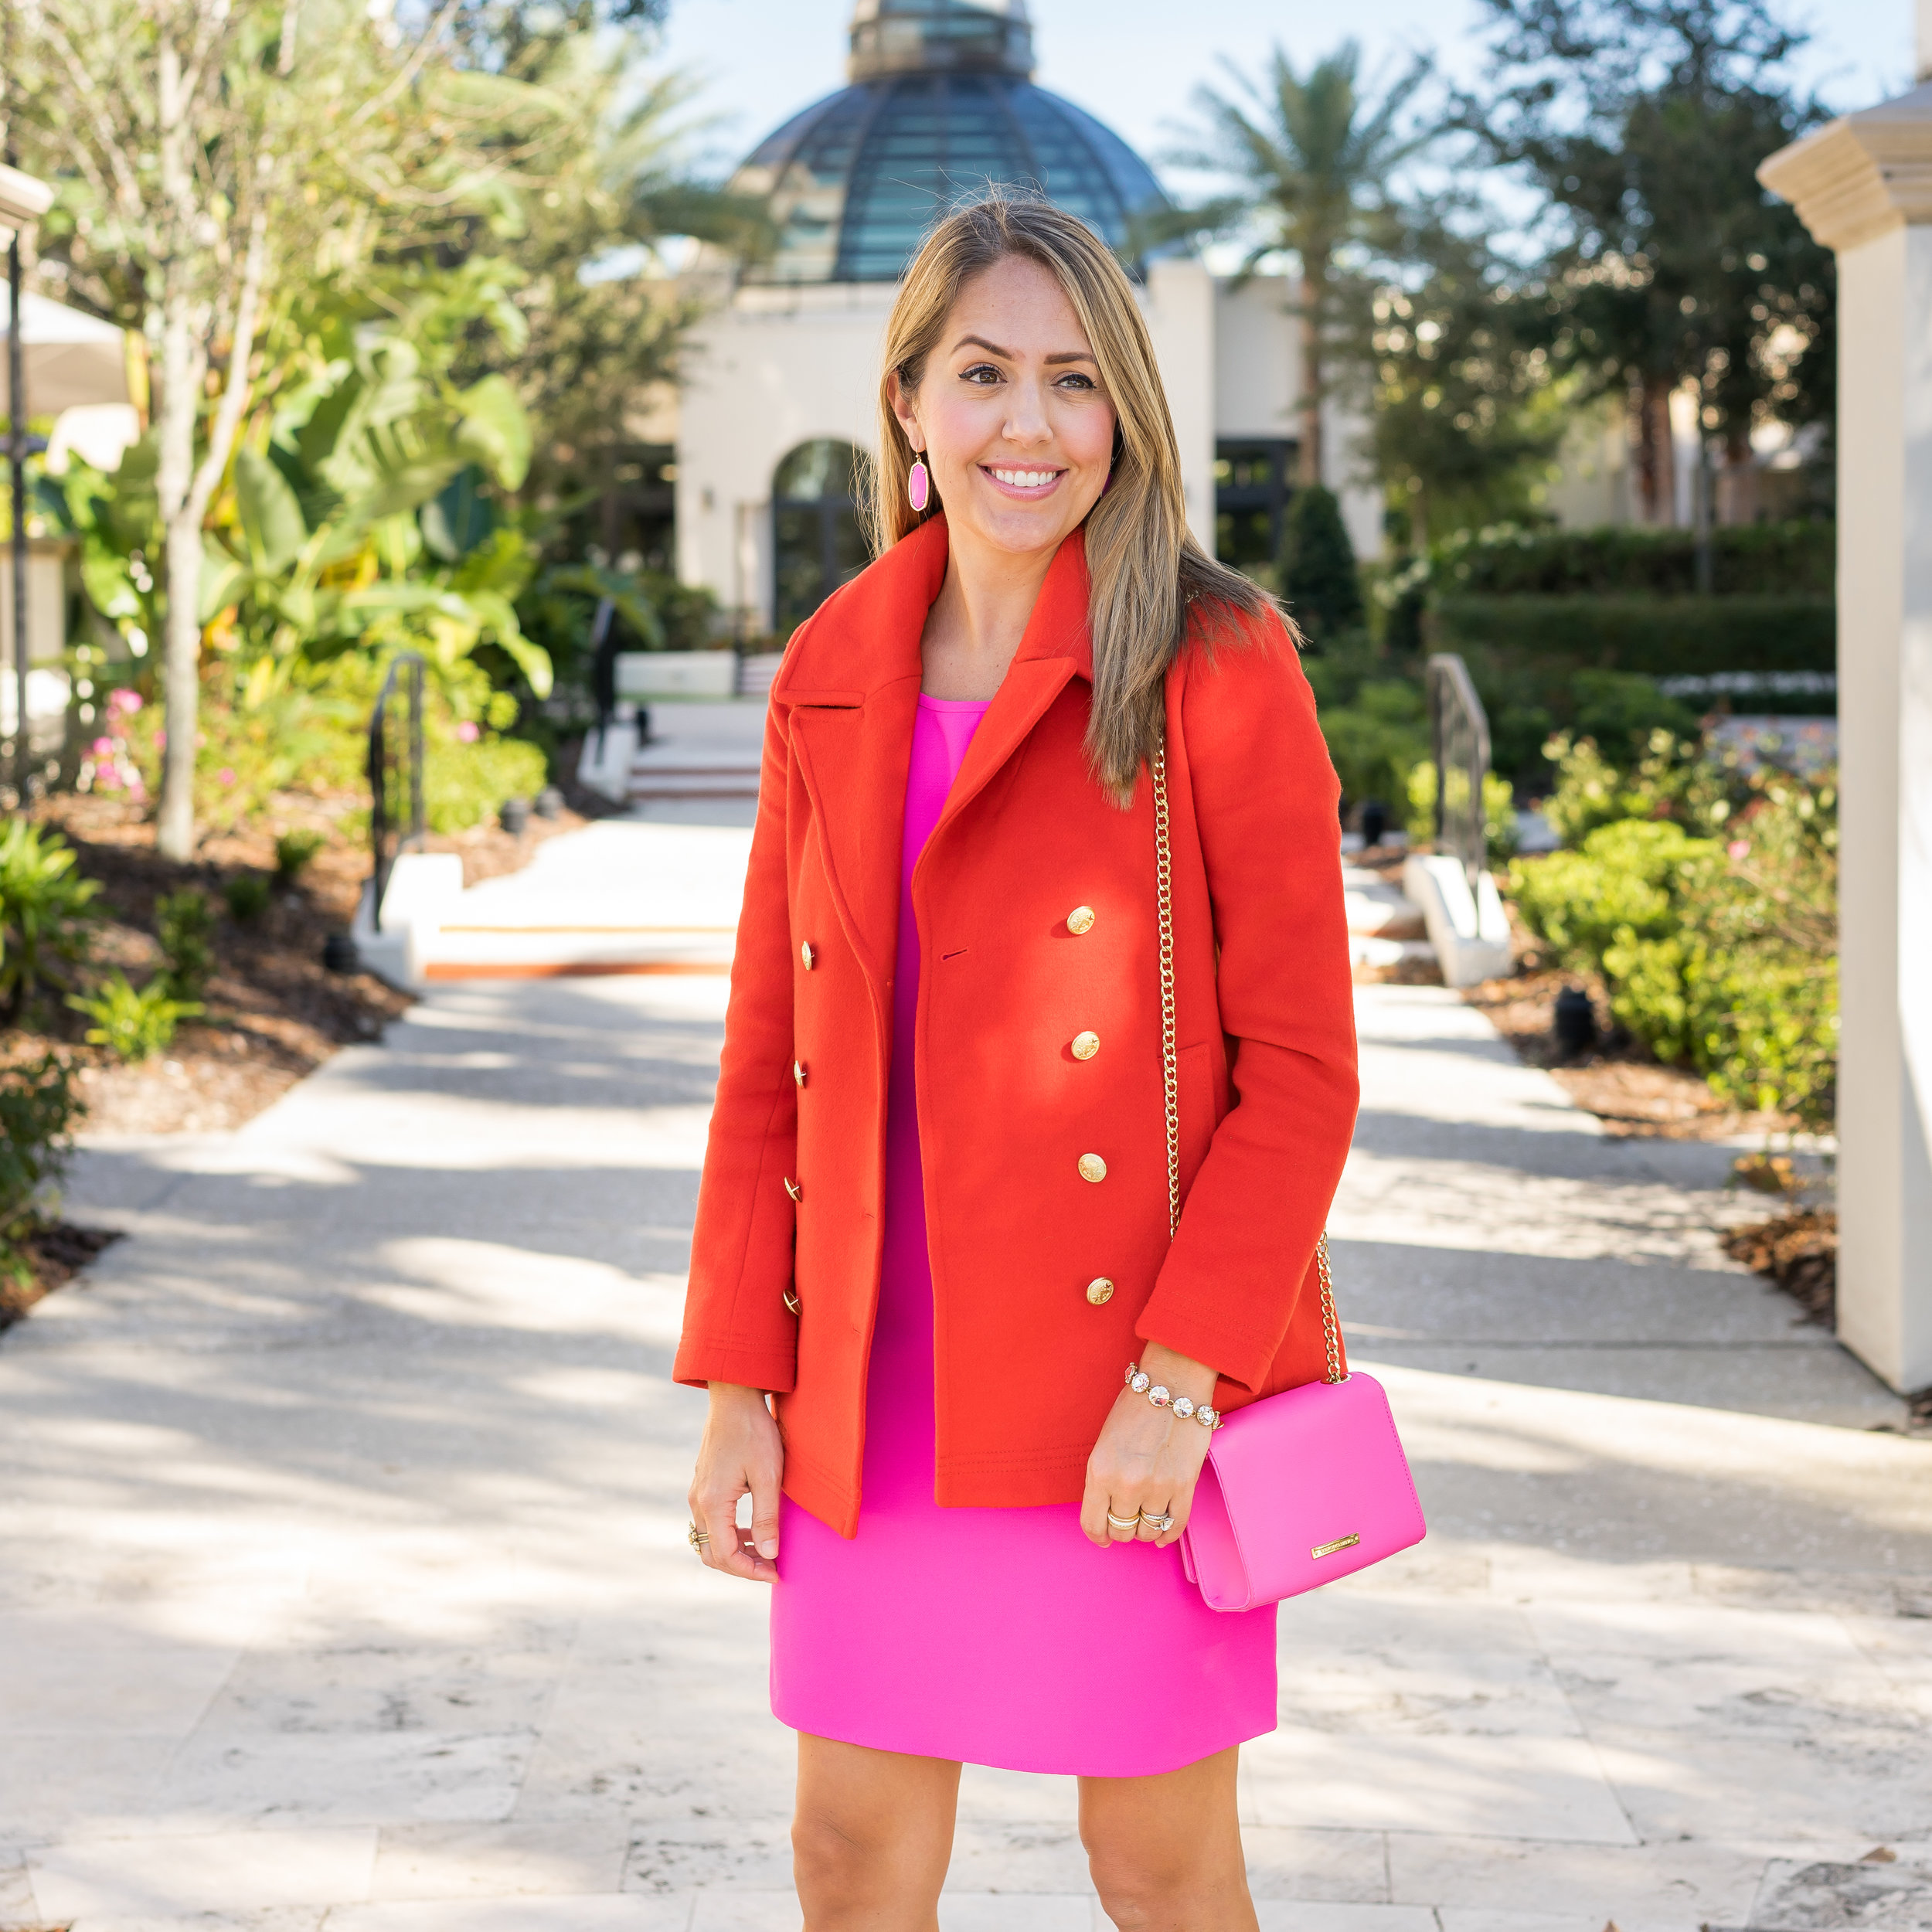 Red coat with hot pink dress and purse